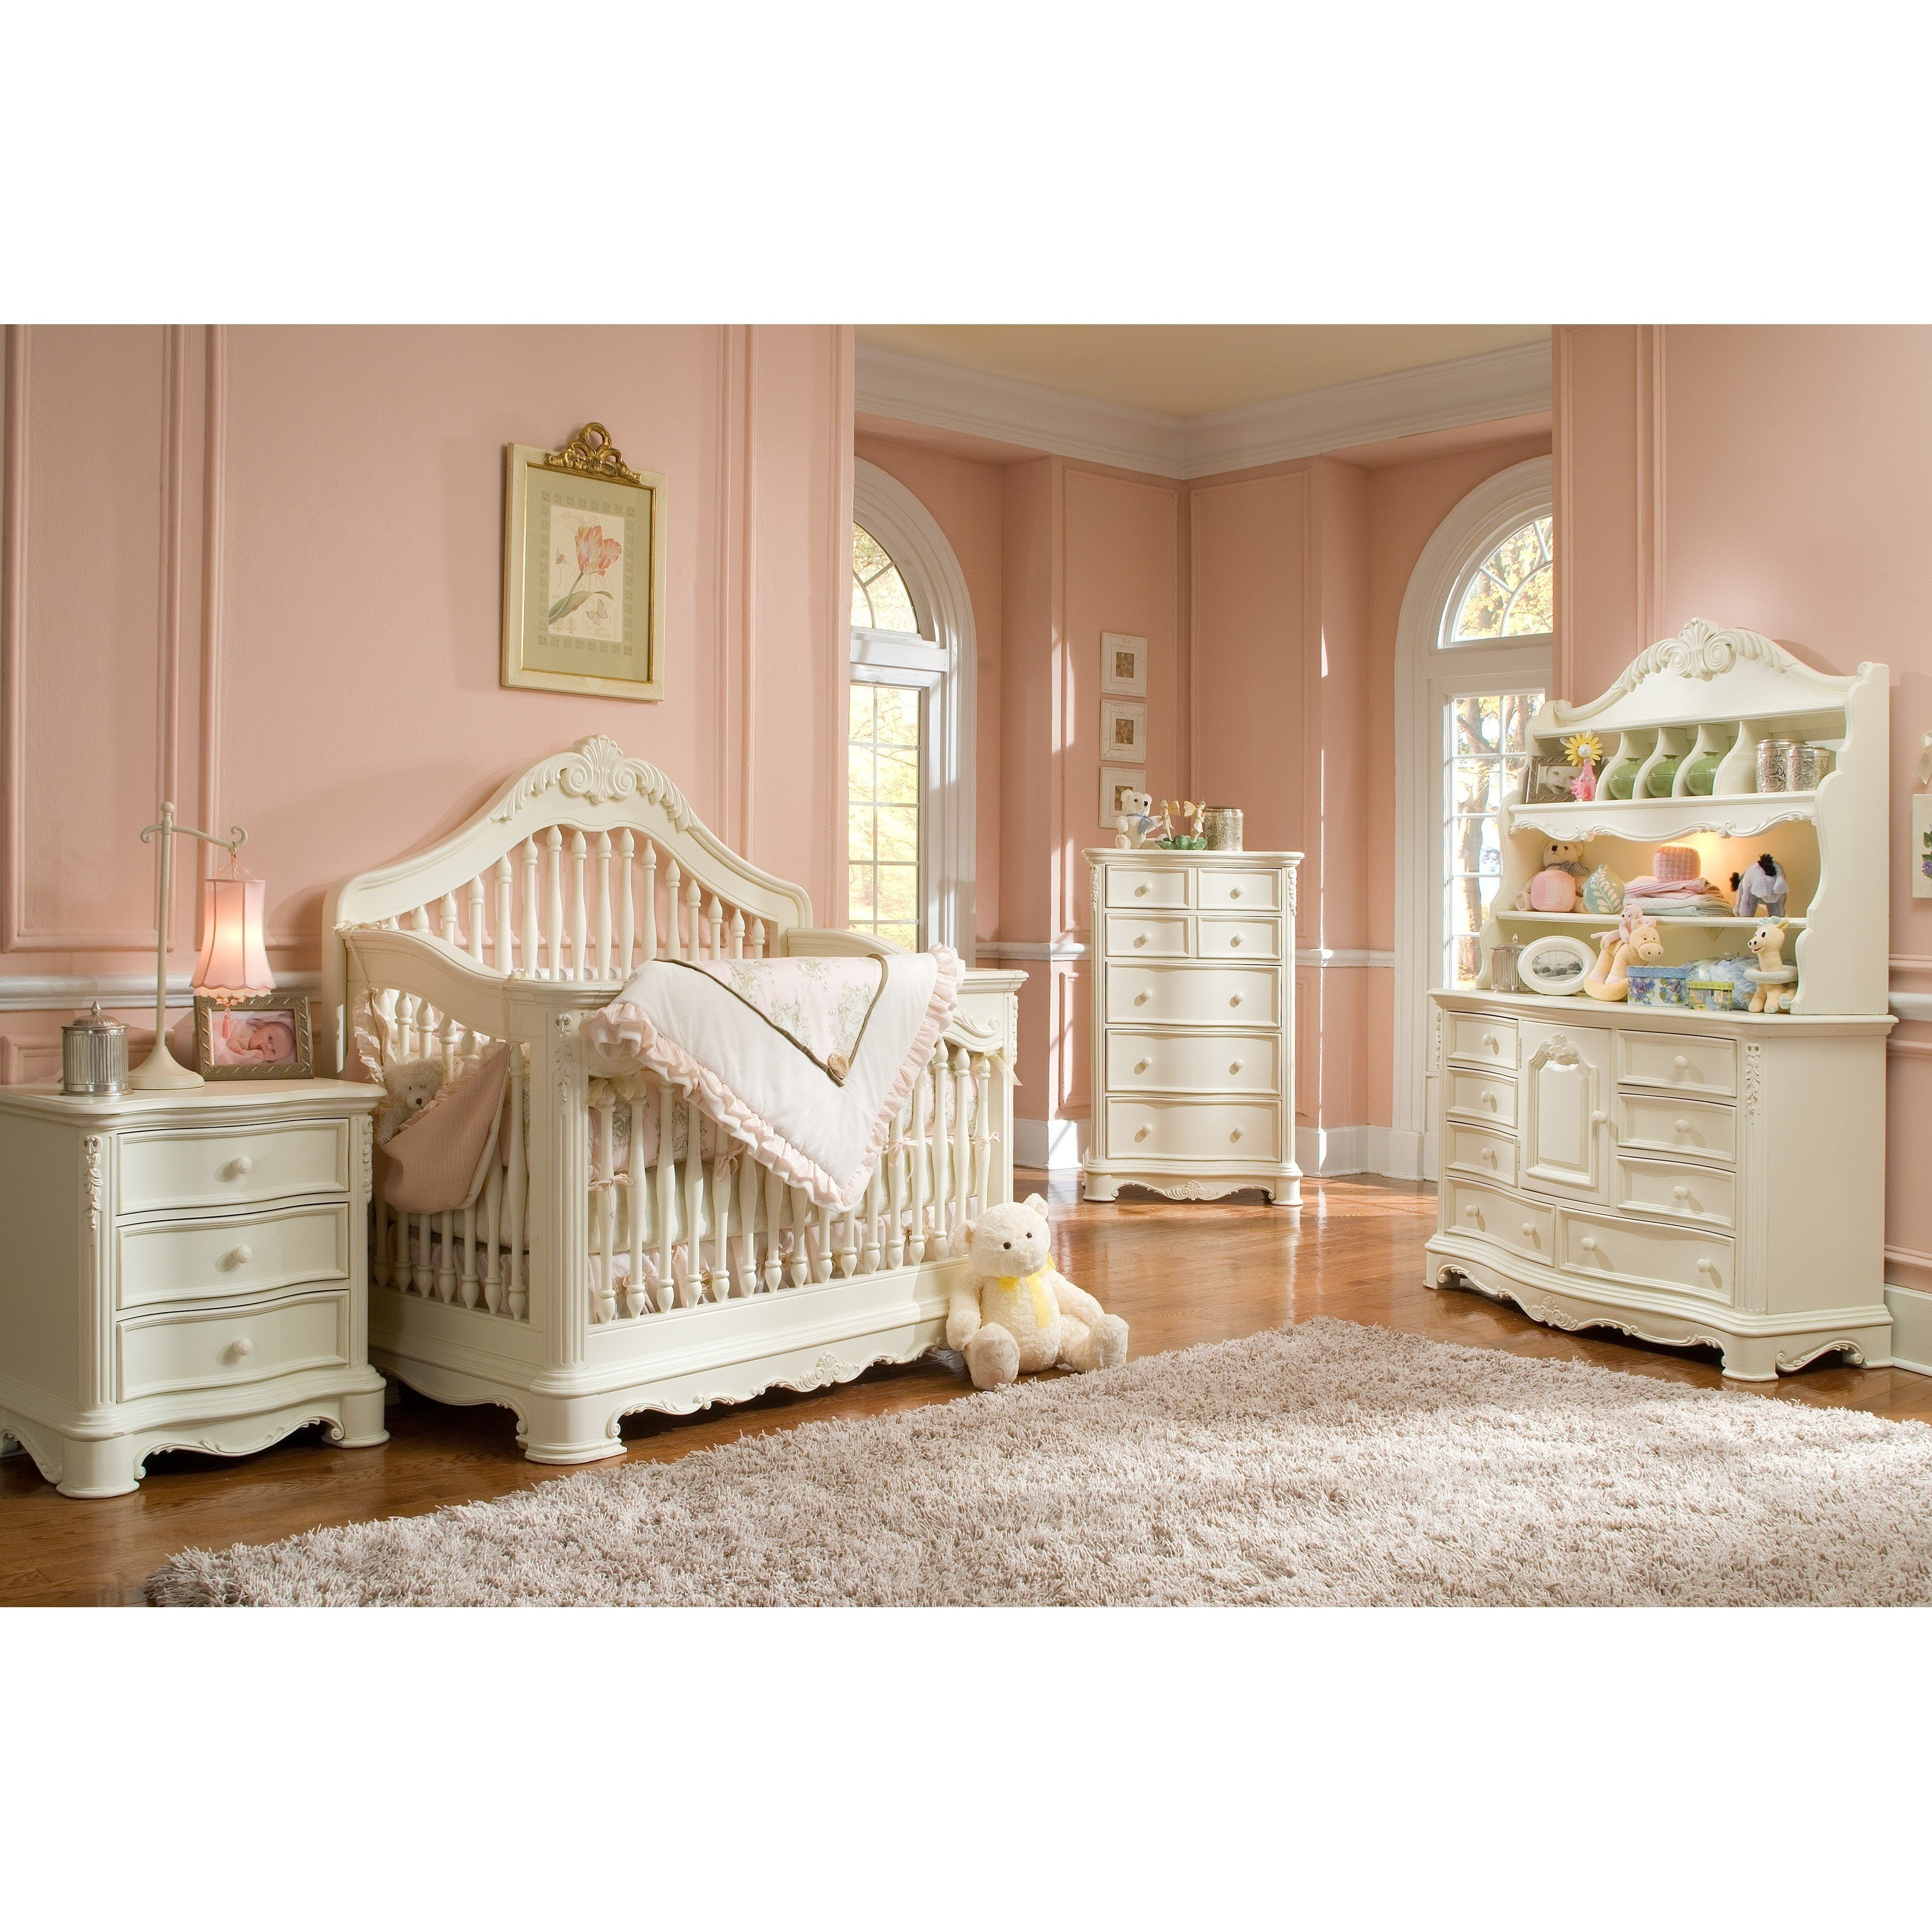 Best 52 Rustic Baby Furniture Sets White Rustic Bedroom Furniture Collections Bedroom With Pictures